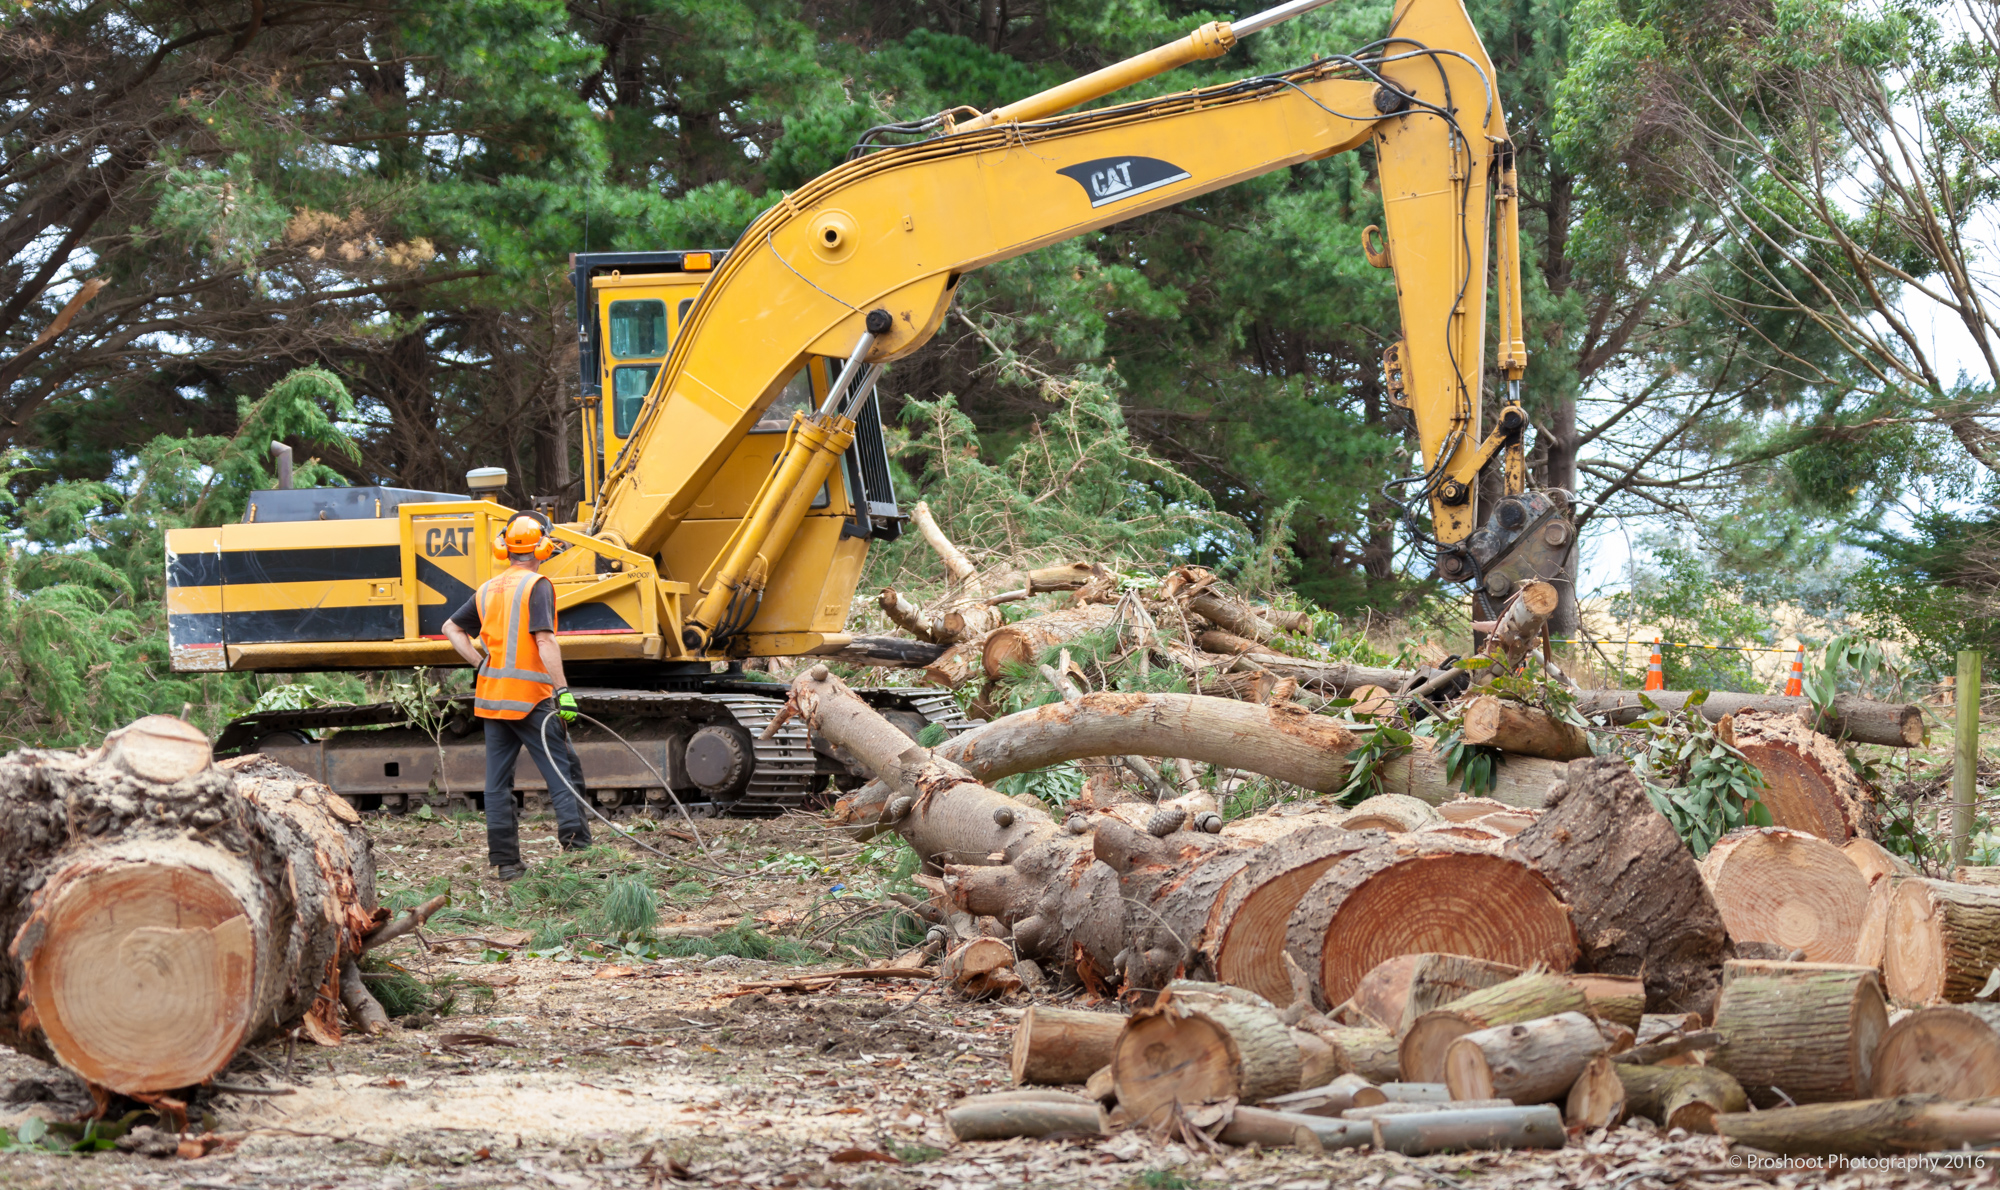 Agricontracts QE2 Tree Felling 6657